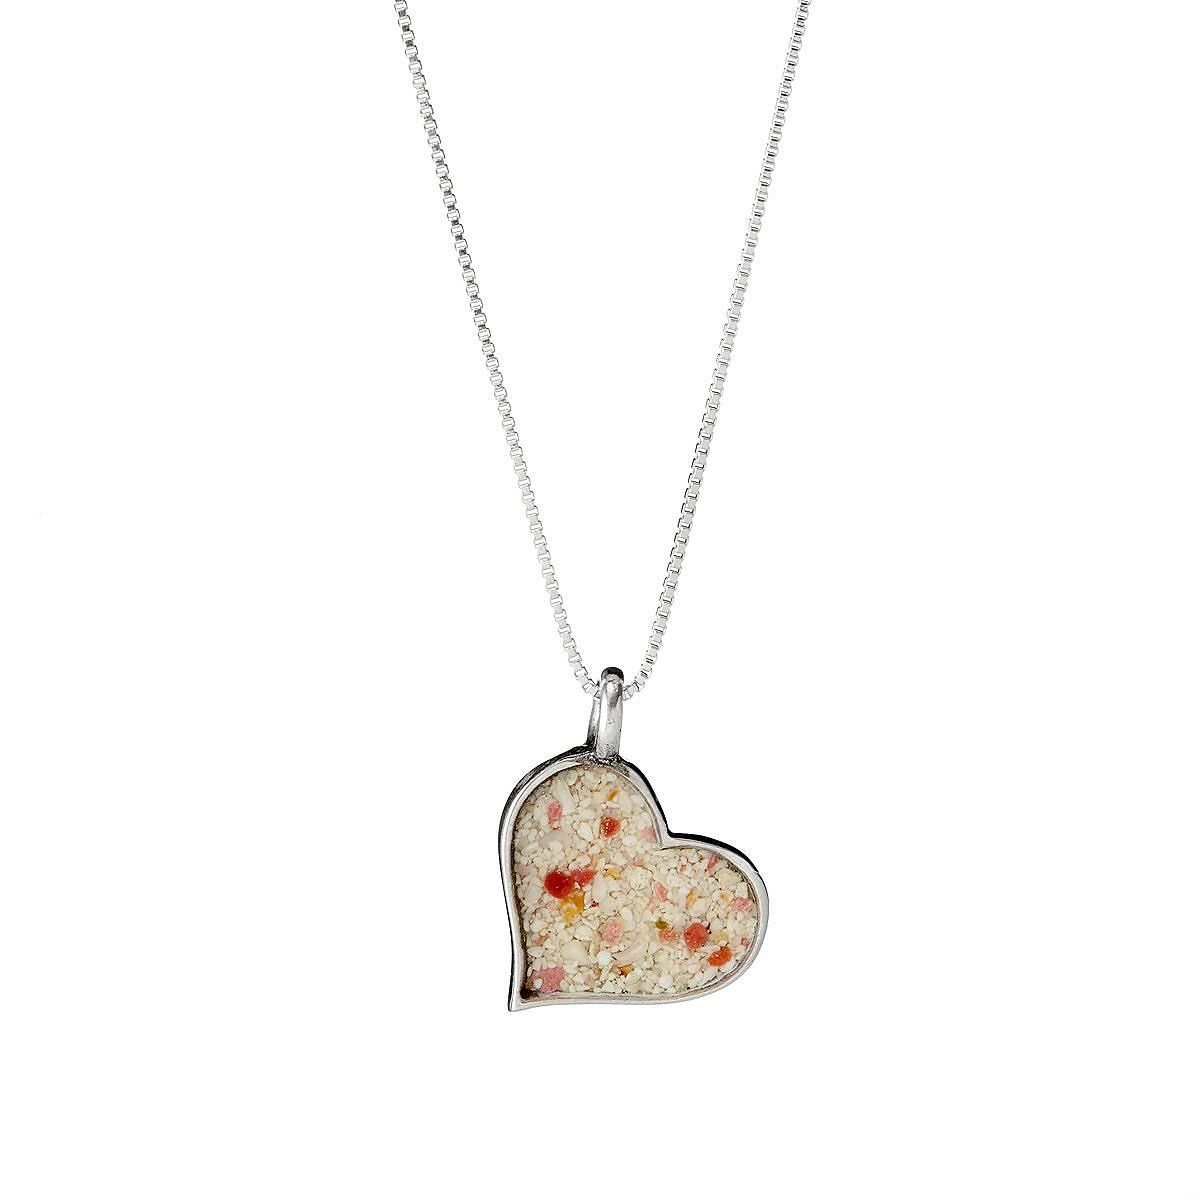 thumbnail pendant product uncommongoods heart anatomical necklace